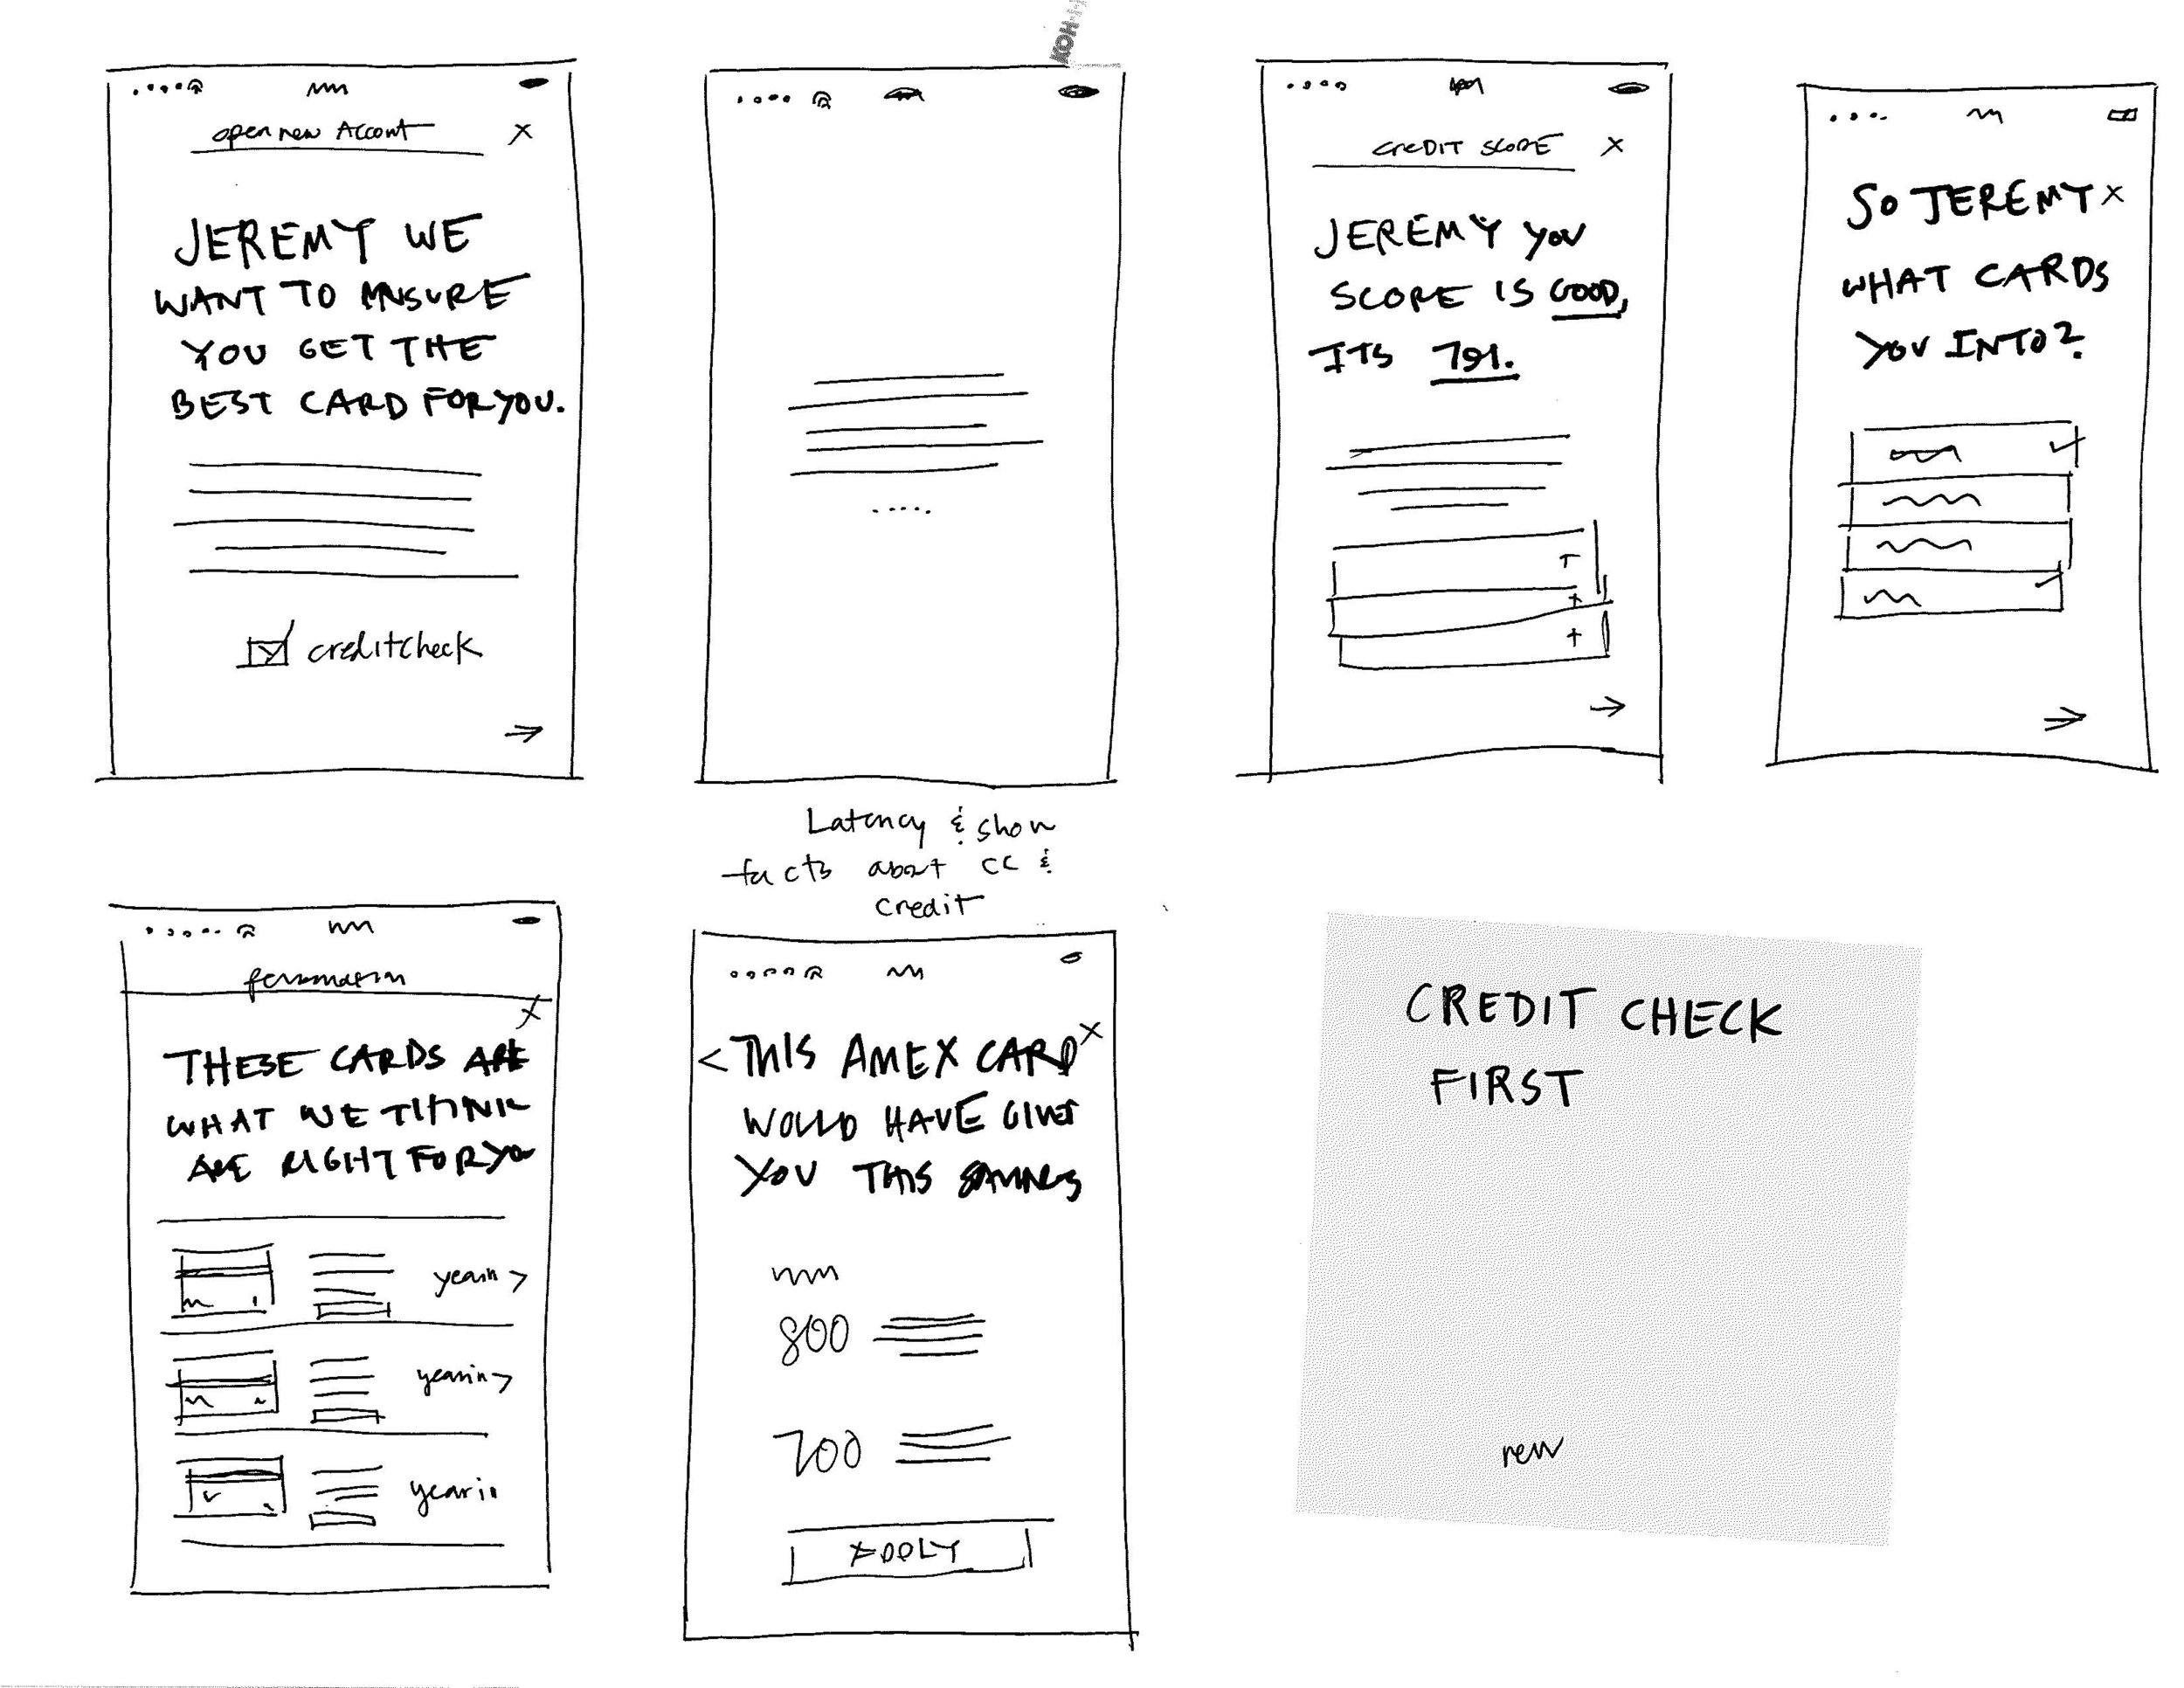 Concept03_MemberArriveFromCreditCheck_cs_Page_05.jpg